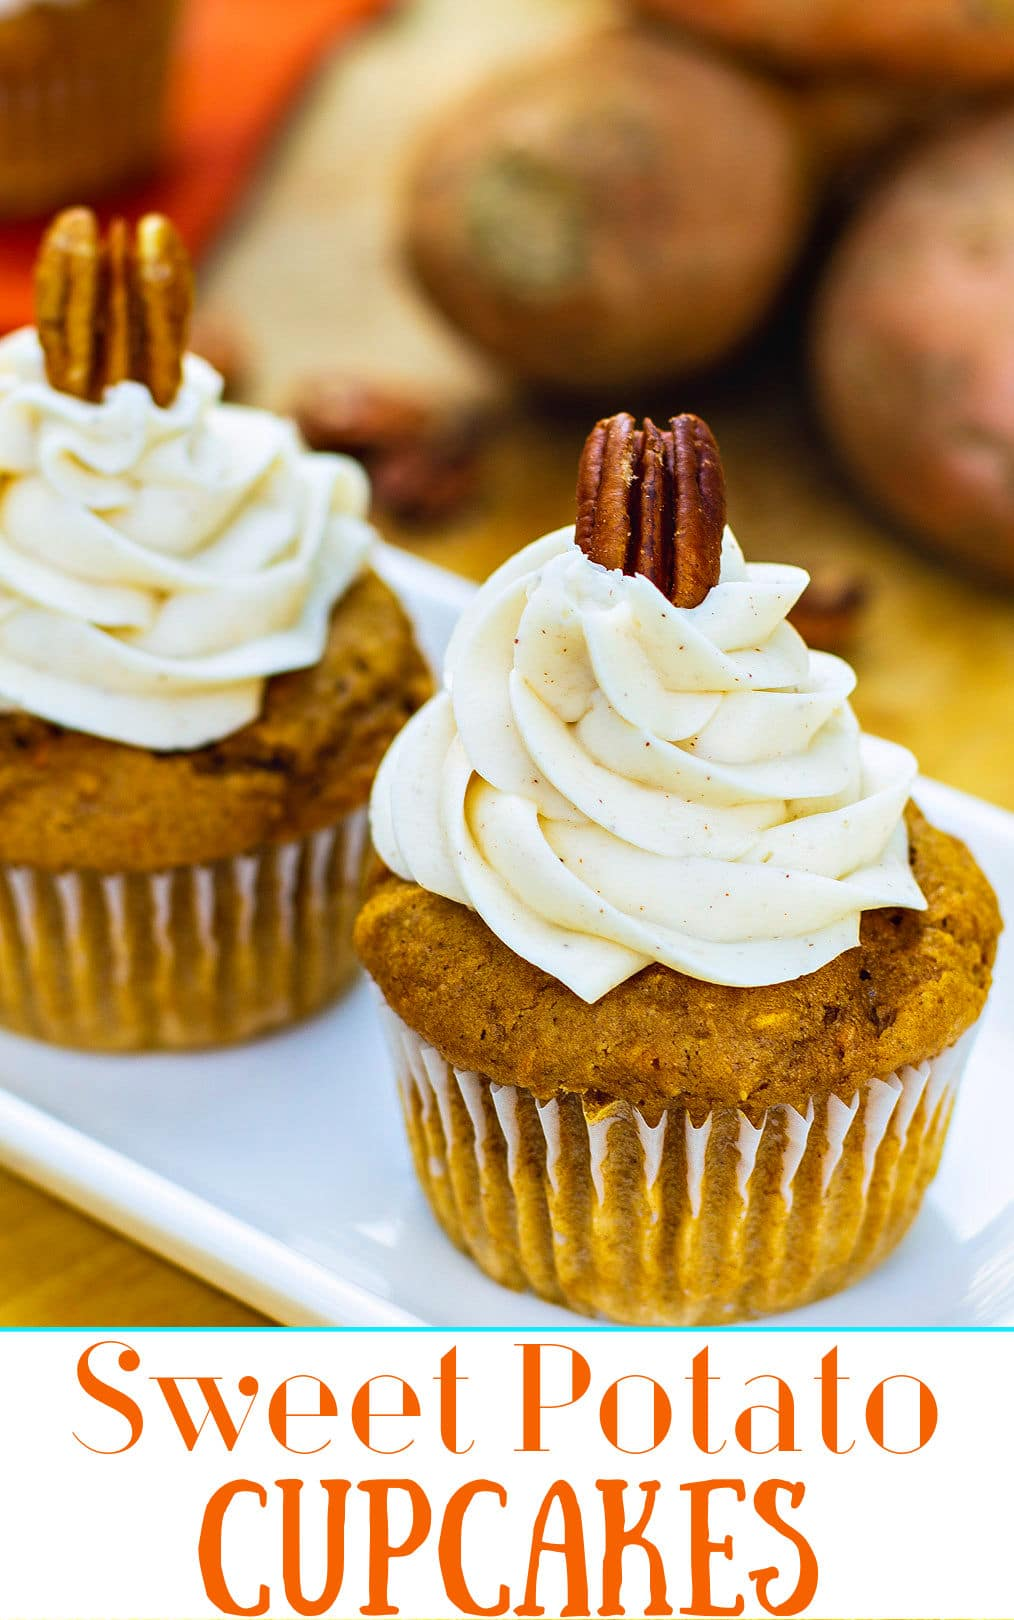 Close-up of cupcake with frosting topped with a pecan.